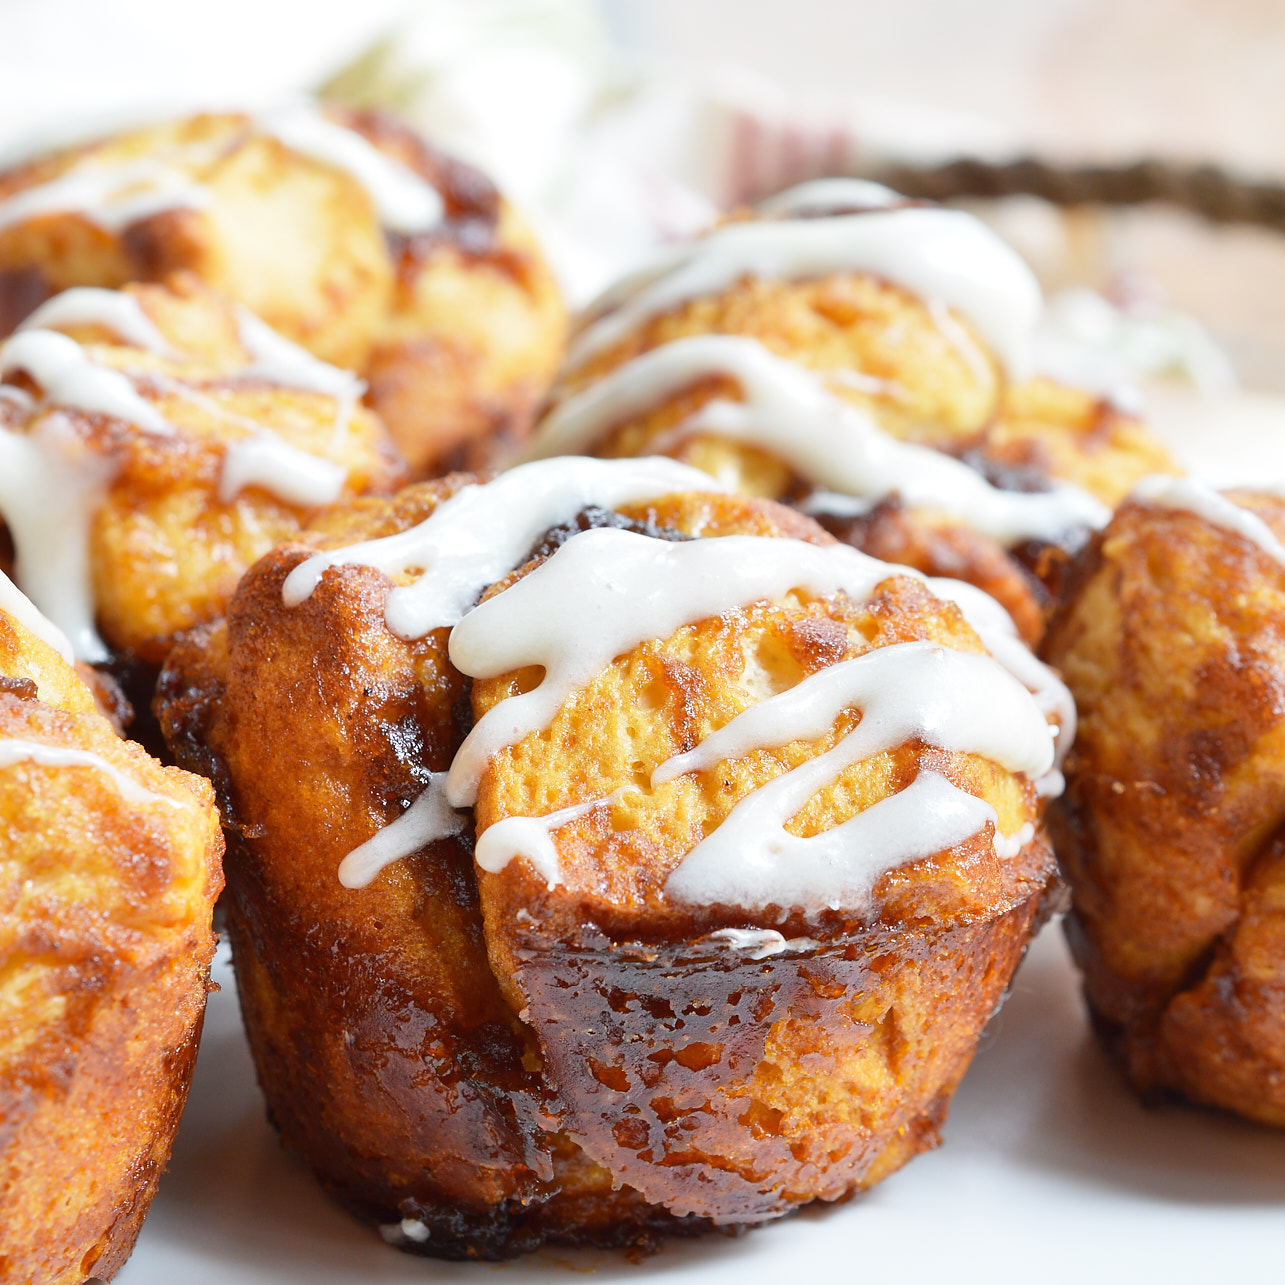 Need an easy breakfast recipe that will feed your hungry crowd? These Monkey Bread Muffins are made with just 4 ingredients and take no time at all! Like sticky buns with a cream cheese glaze without all the hassle.